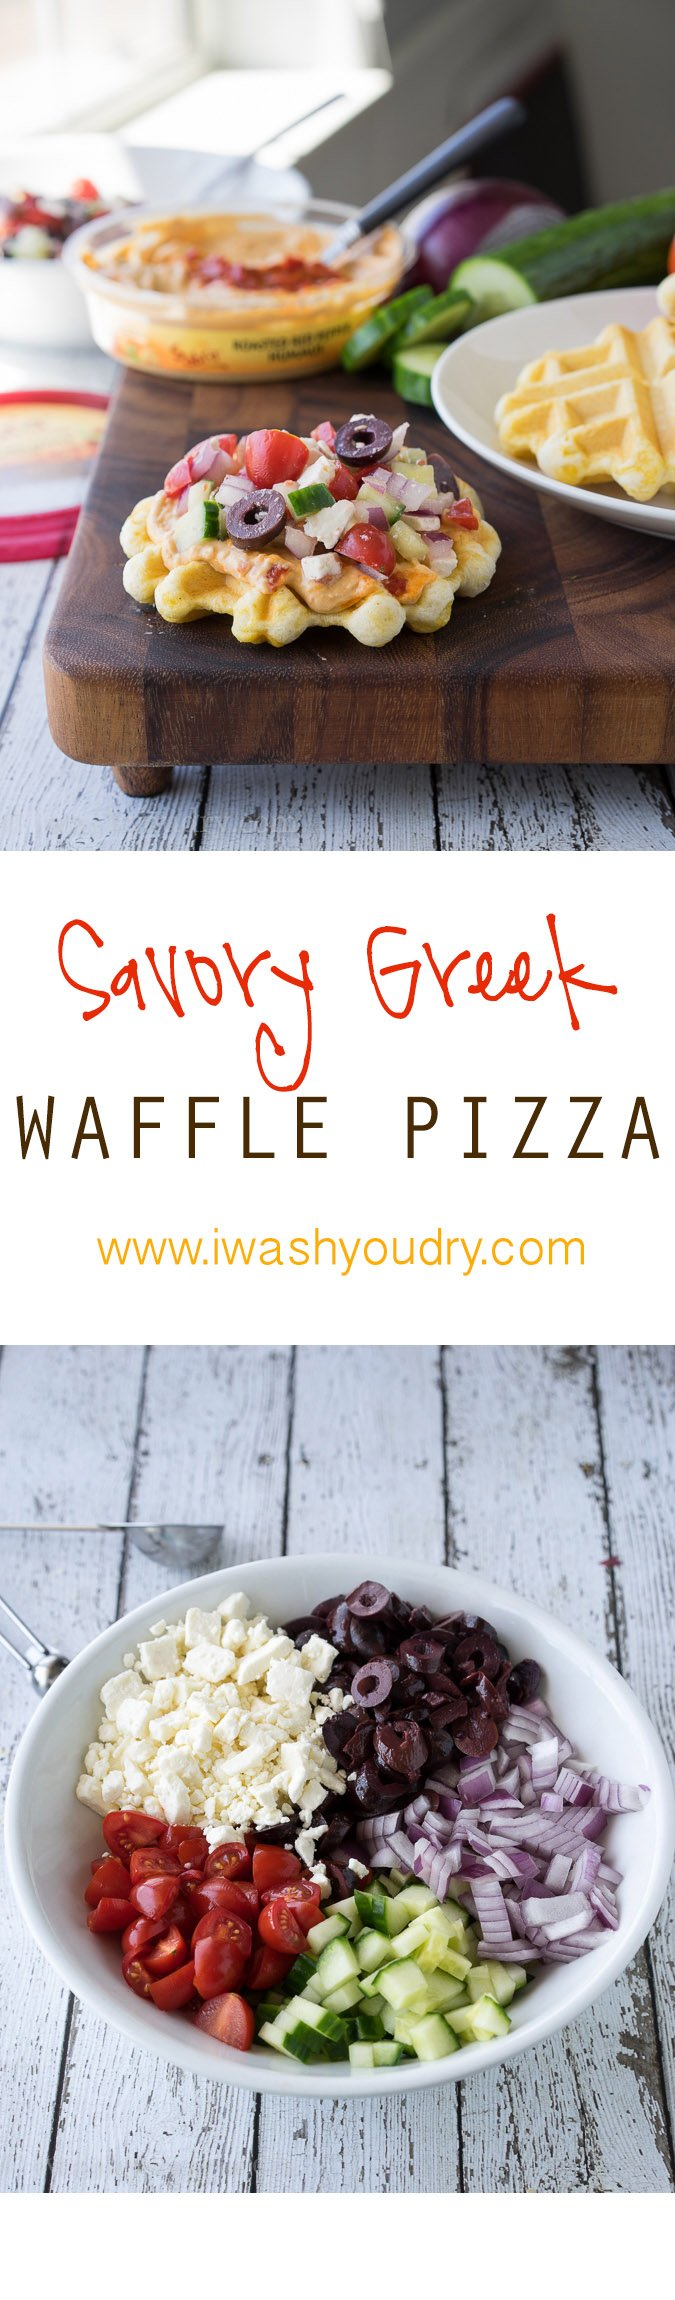 Such a fun and easy lunch or appetizer! Savory Greek Waffle Pizzas with hummus!